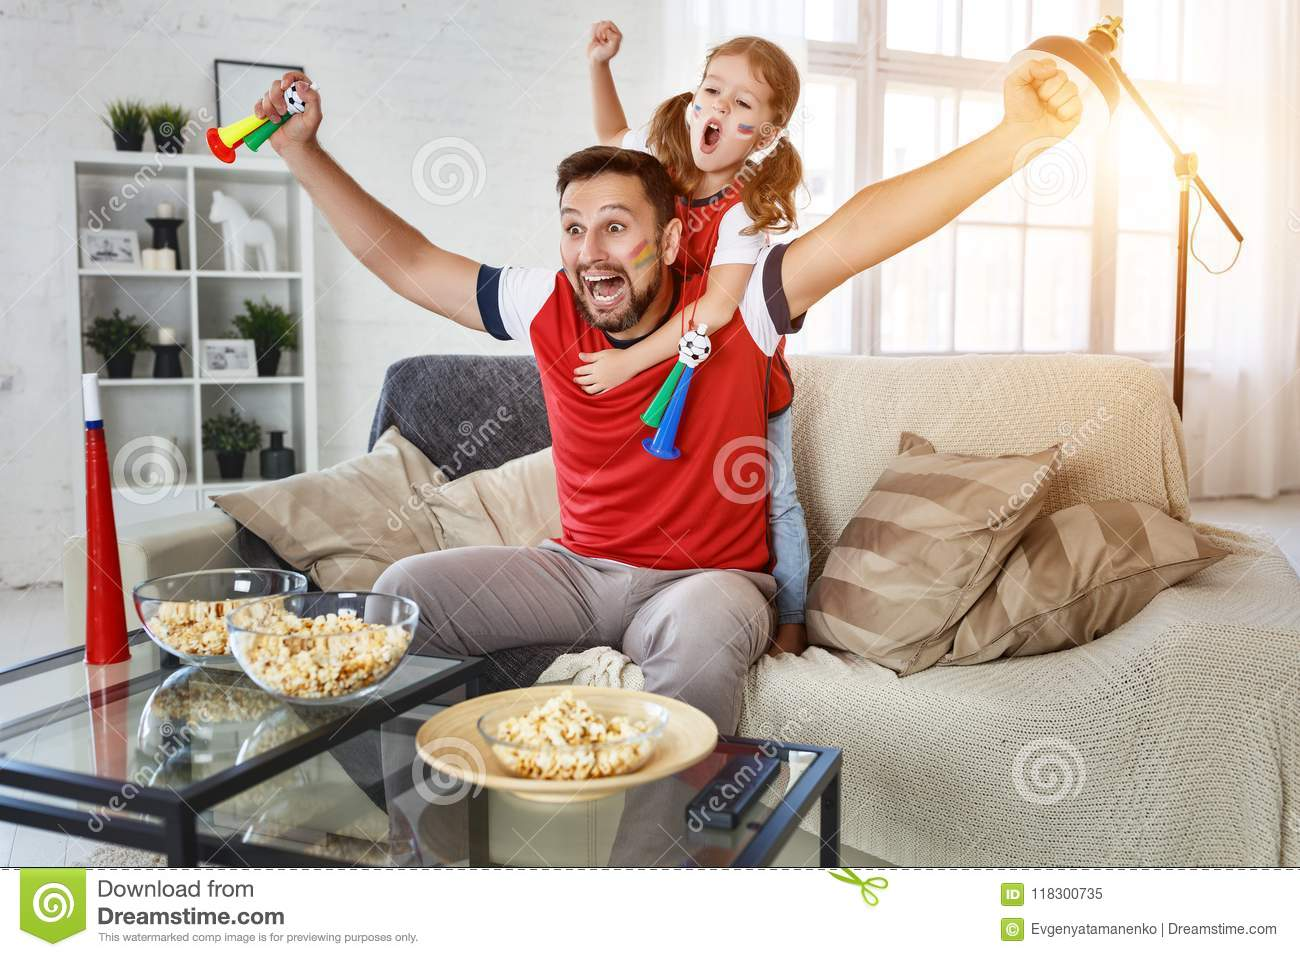 Family of fans watching a football match on TV at home